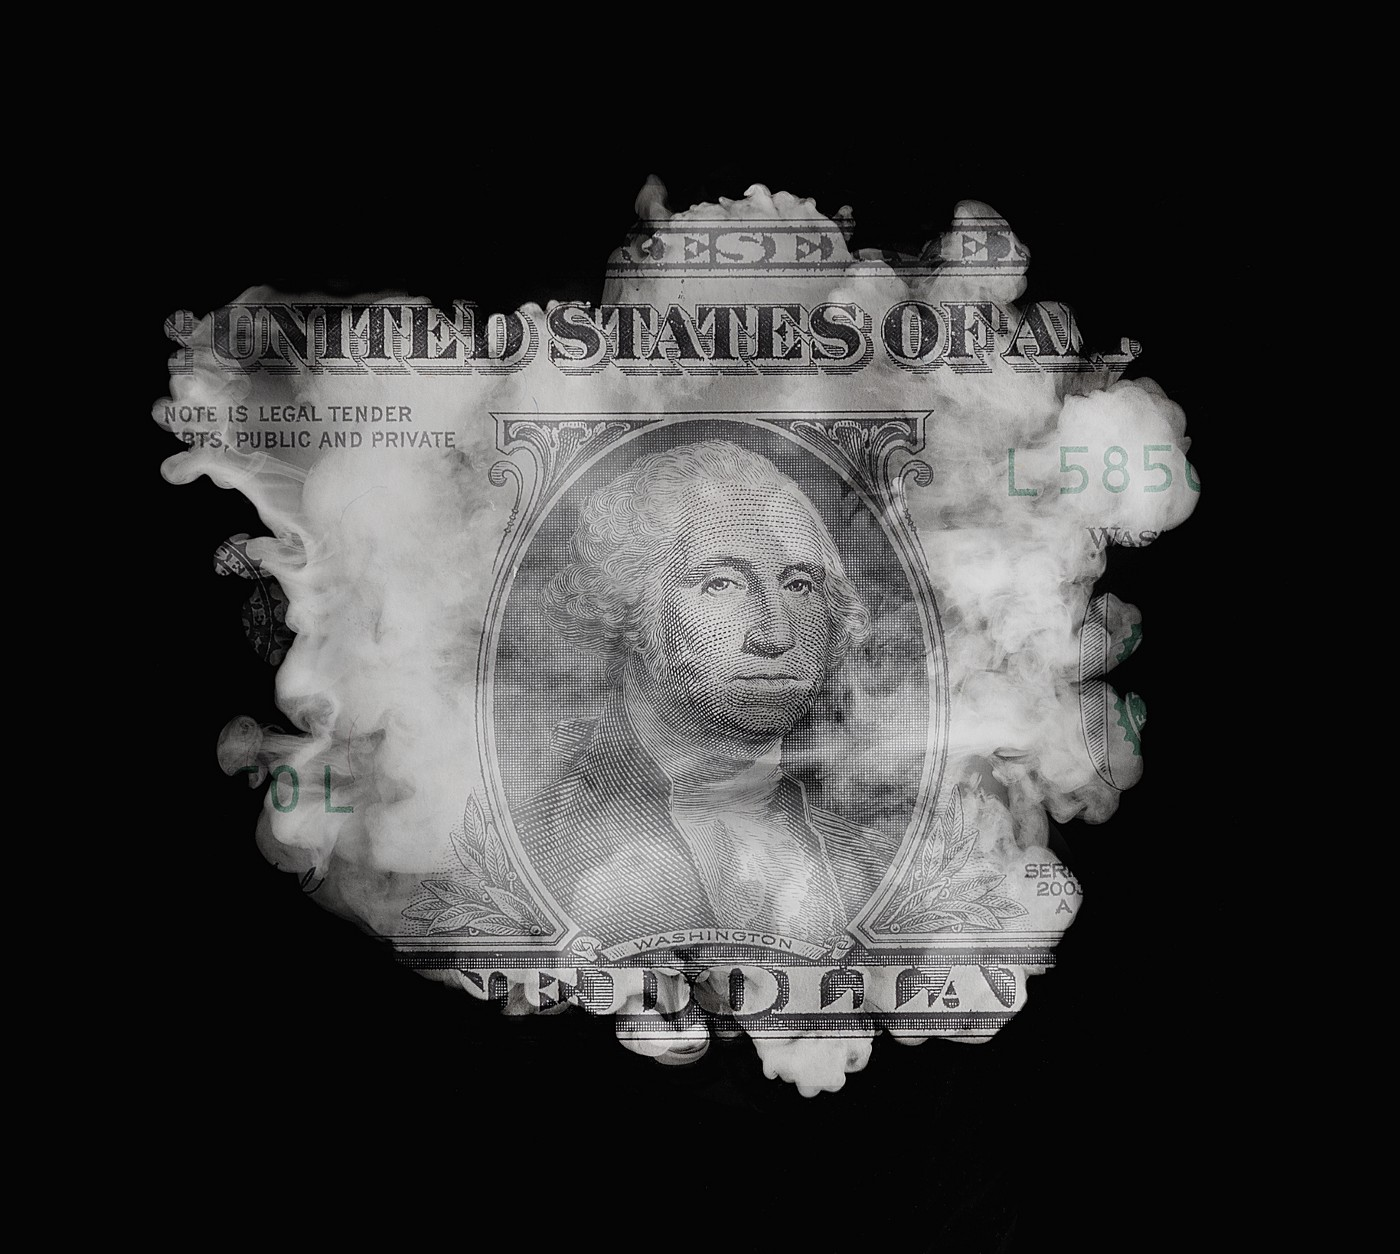 A cloud on a black background is superimposed over a US dollar bill.